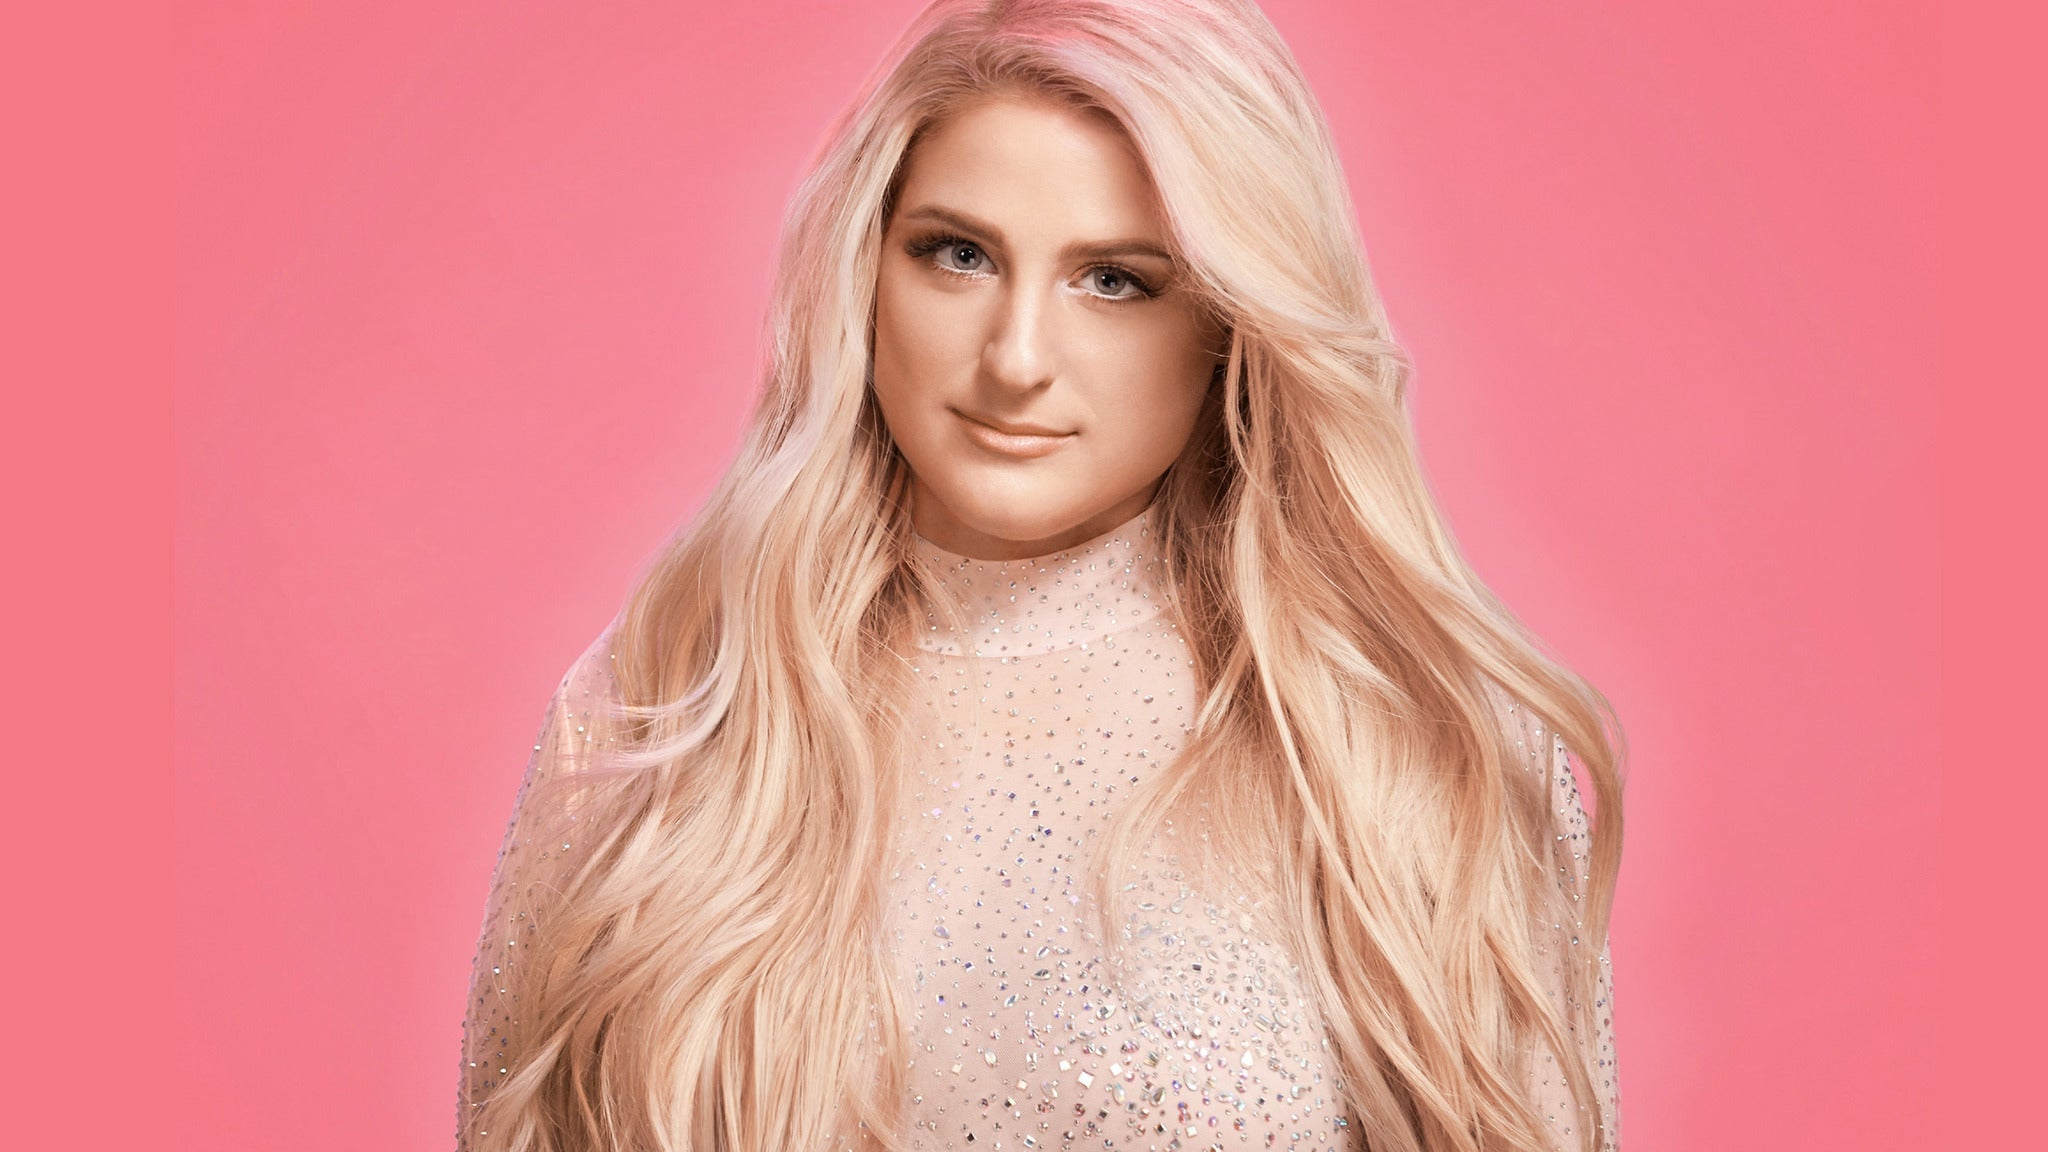 Meghan Trainor - VIP Meet & Greet Upgrade at XFINITY Theatre - Hartford, CT 06120